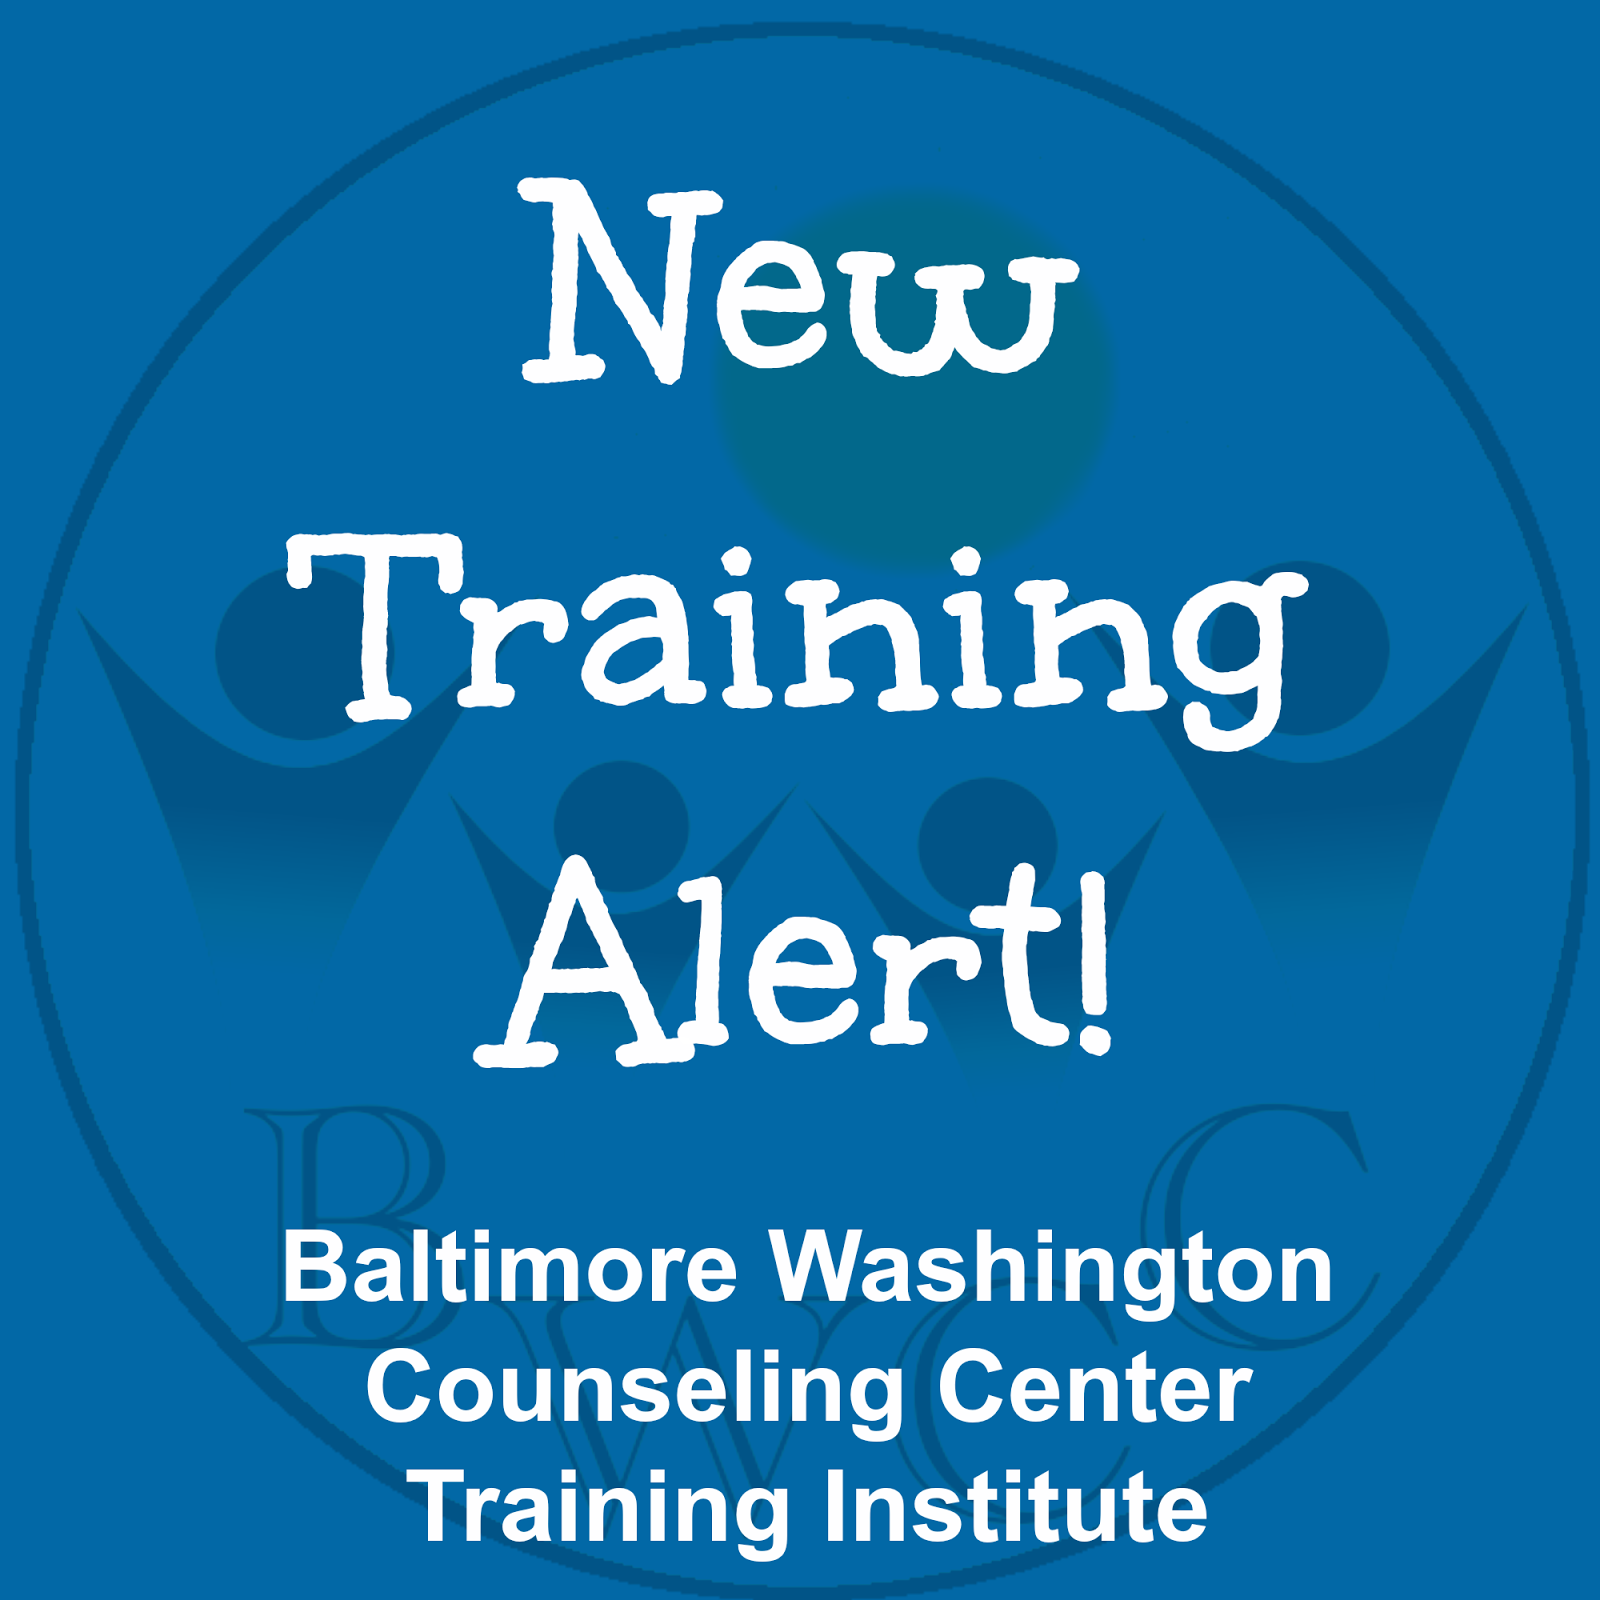 Trauma-Focused Cognitive Behavioral Therapy (TF-CBT) CEU Training January 23, 2015